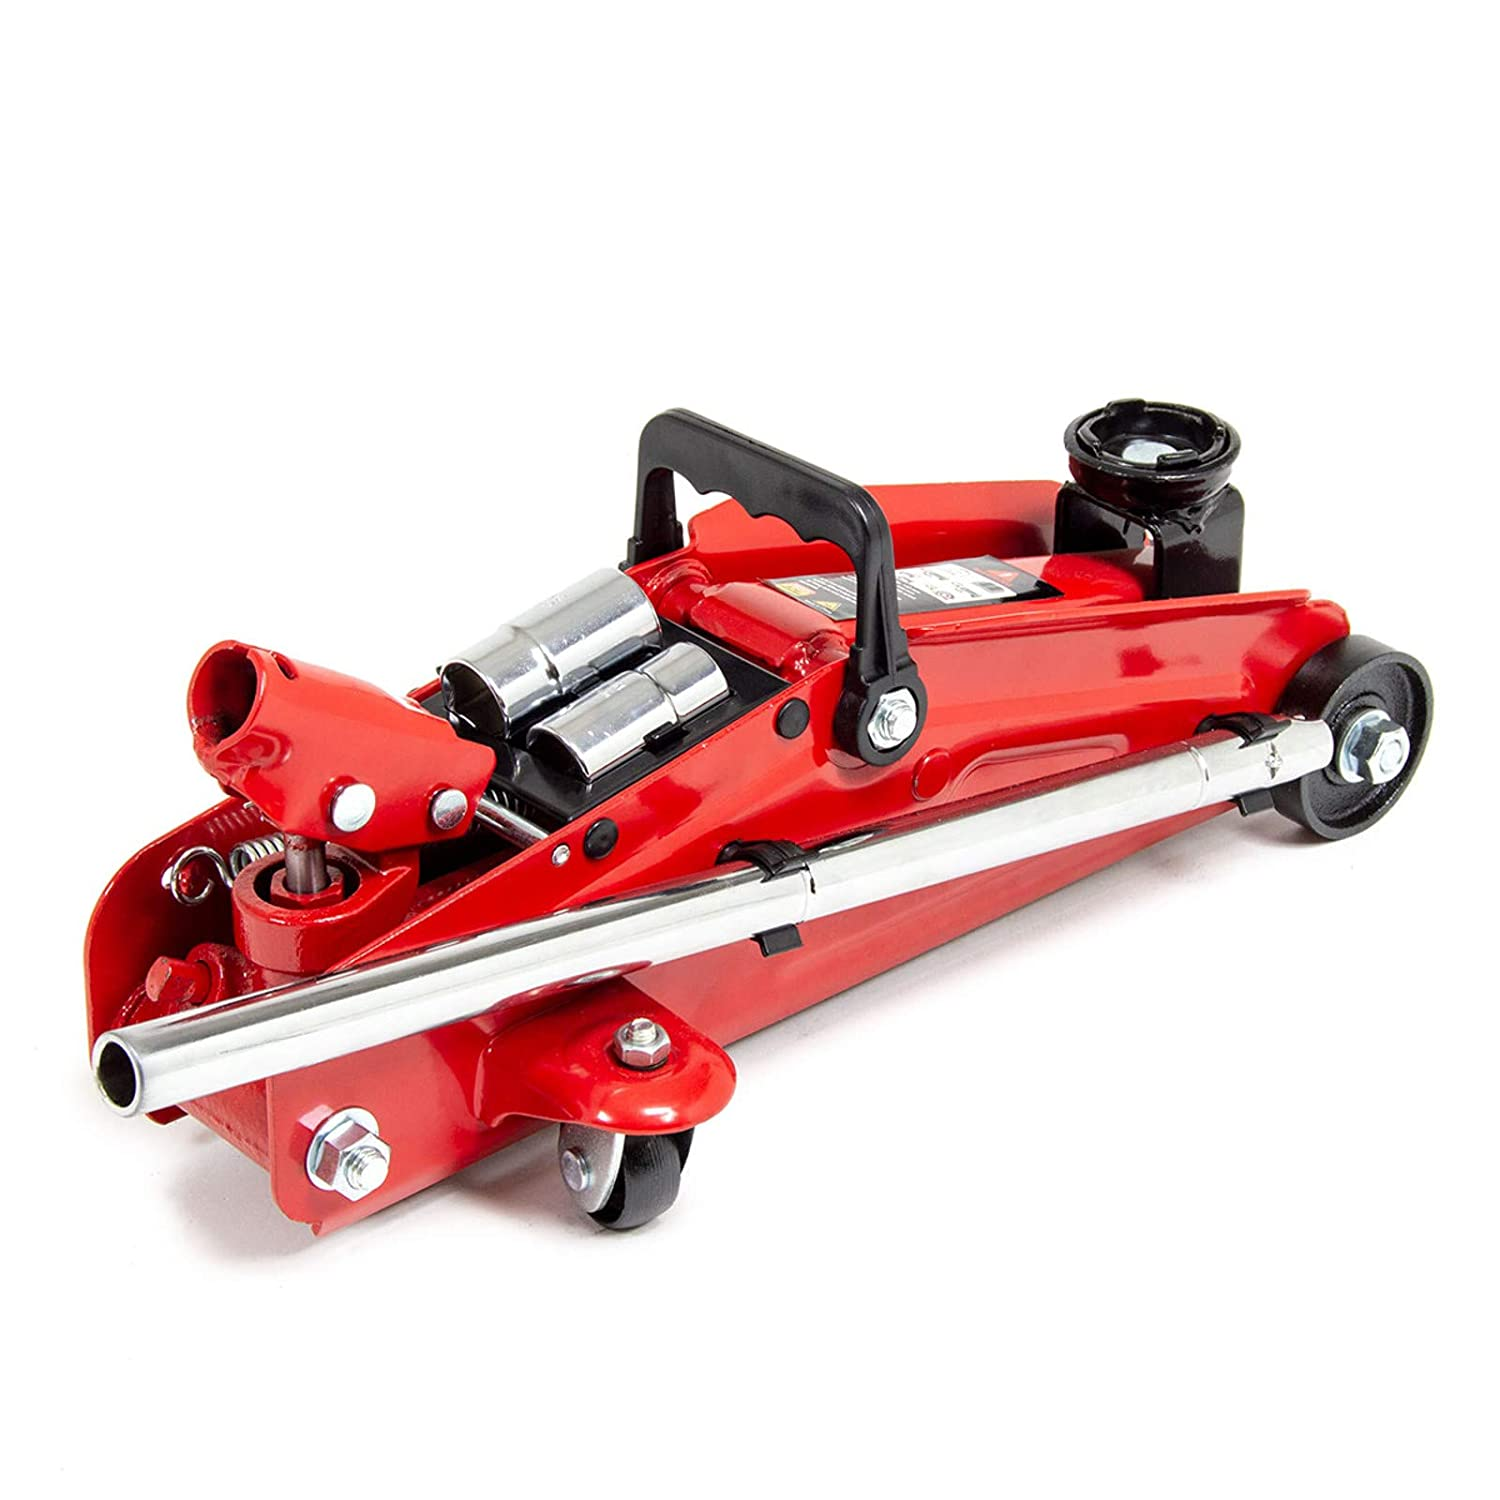 Wolf Big Red 2 T Hydraulic Trolley Jack with Extendable Handle /& Combination Wheel Brace